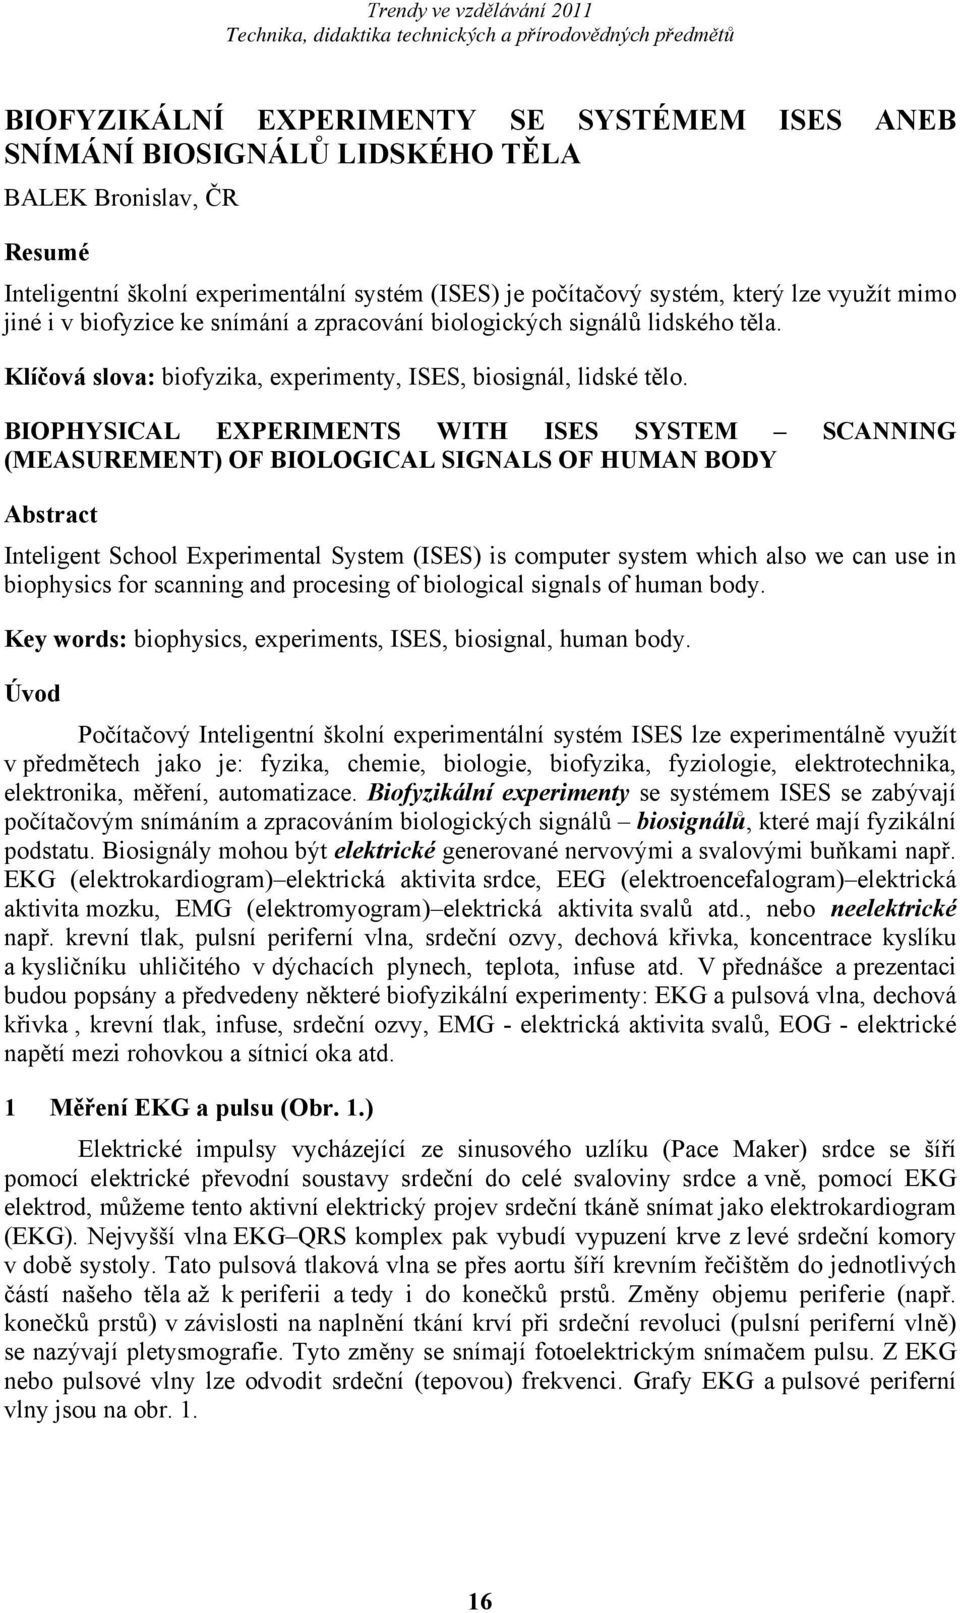 BIOPHYSICAL EXPERIMENTS WITH ISES SYSTEM SCANNING (MEASUREMENT) OF BIOLOGICAL SIGNALS OF HUMAN BODY Abstract Inteligent School Experimental System (ISES) is computer system which also we can use in